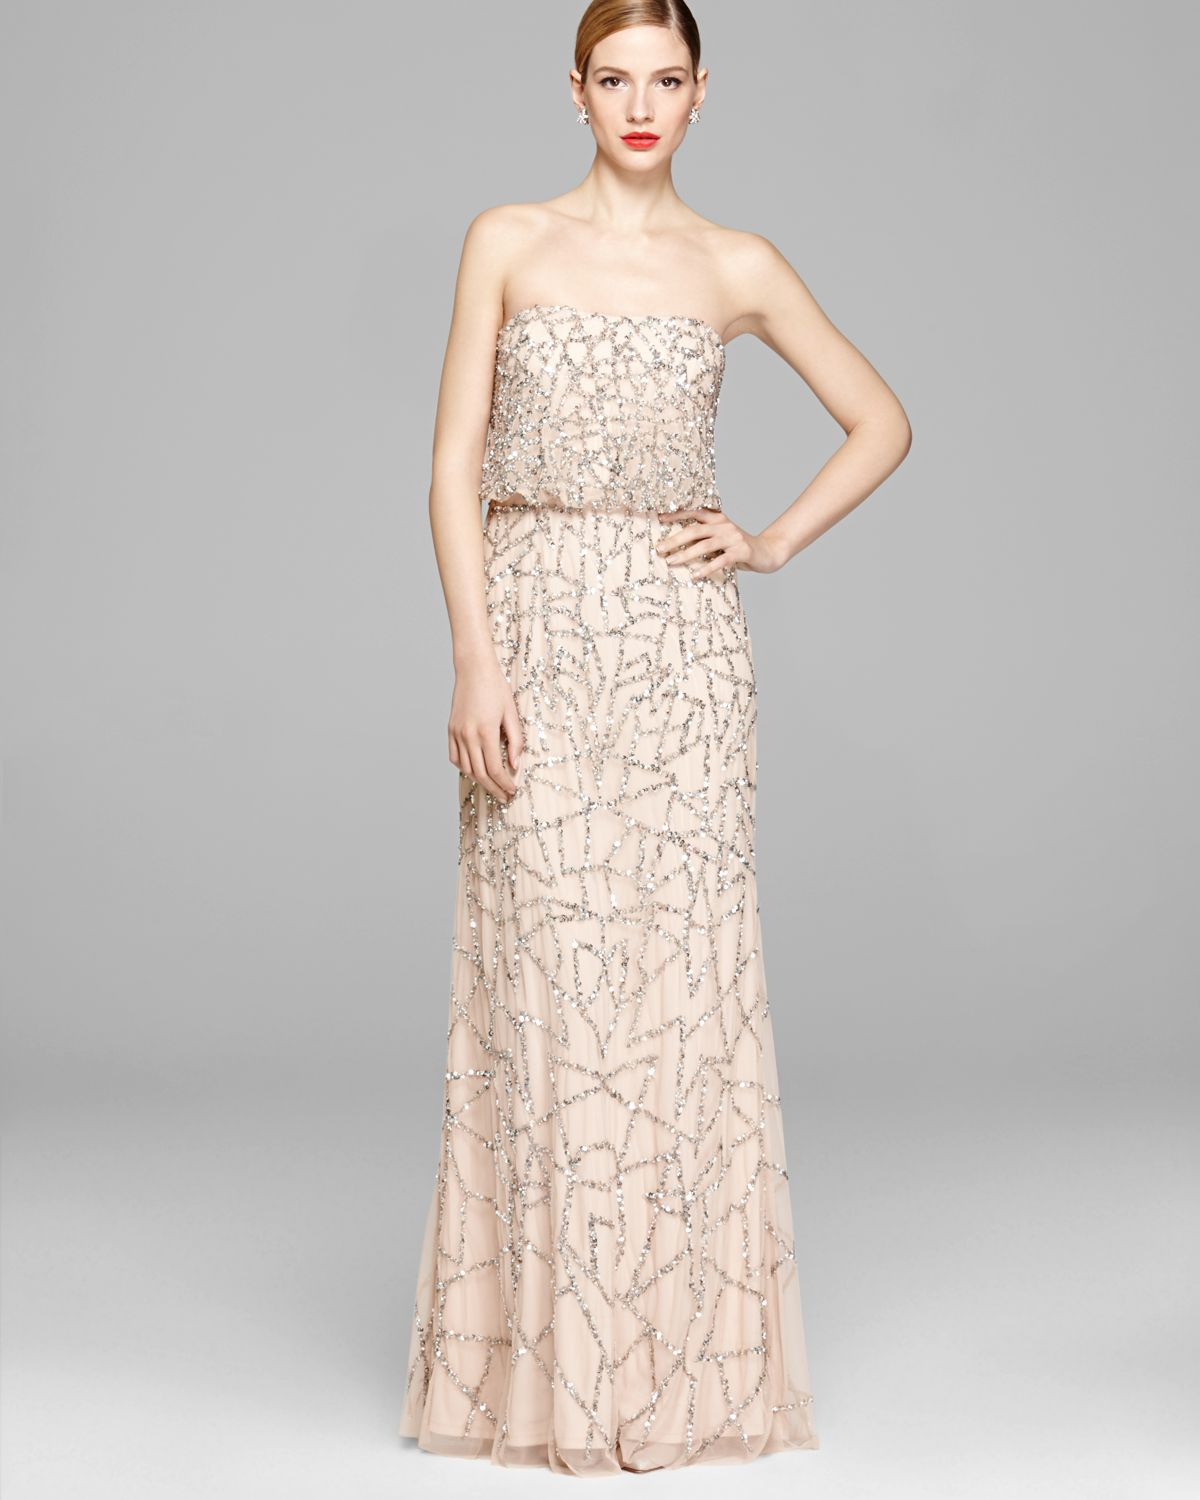 Fantastic Adrianna Papell One Shoulder Beaded Blouson Gown ...